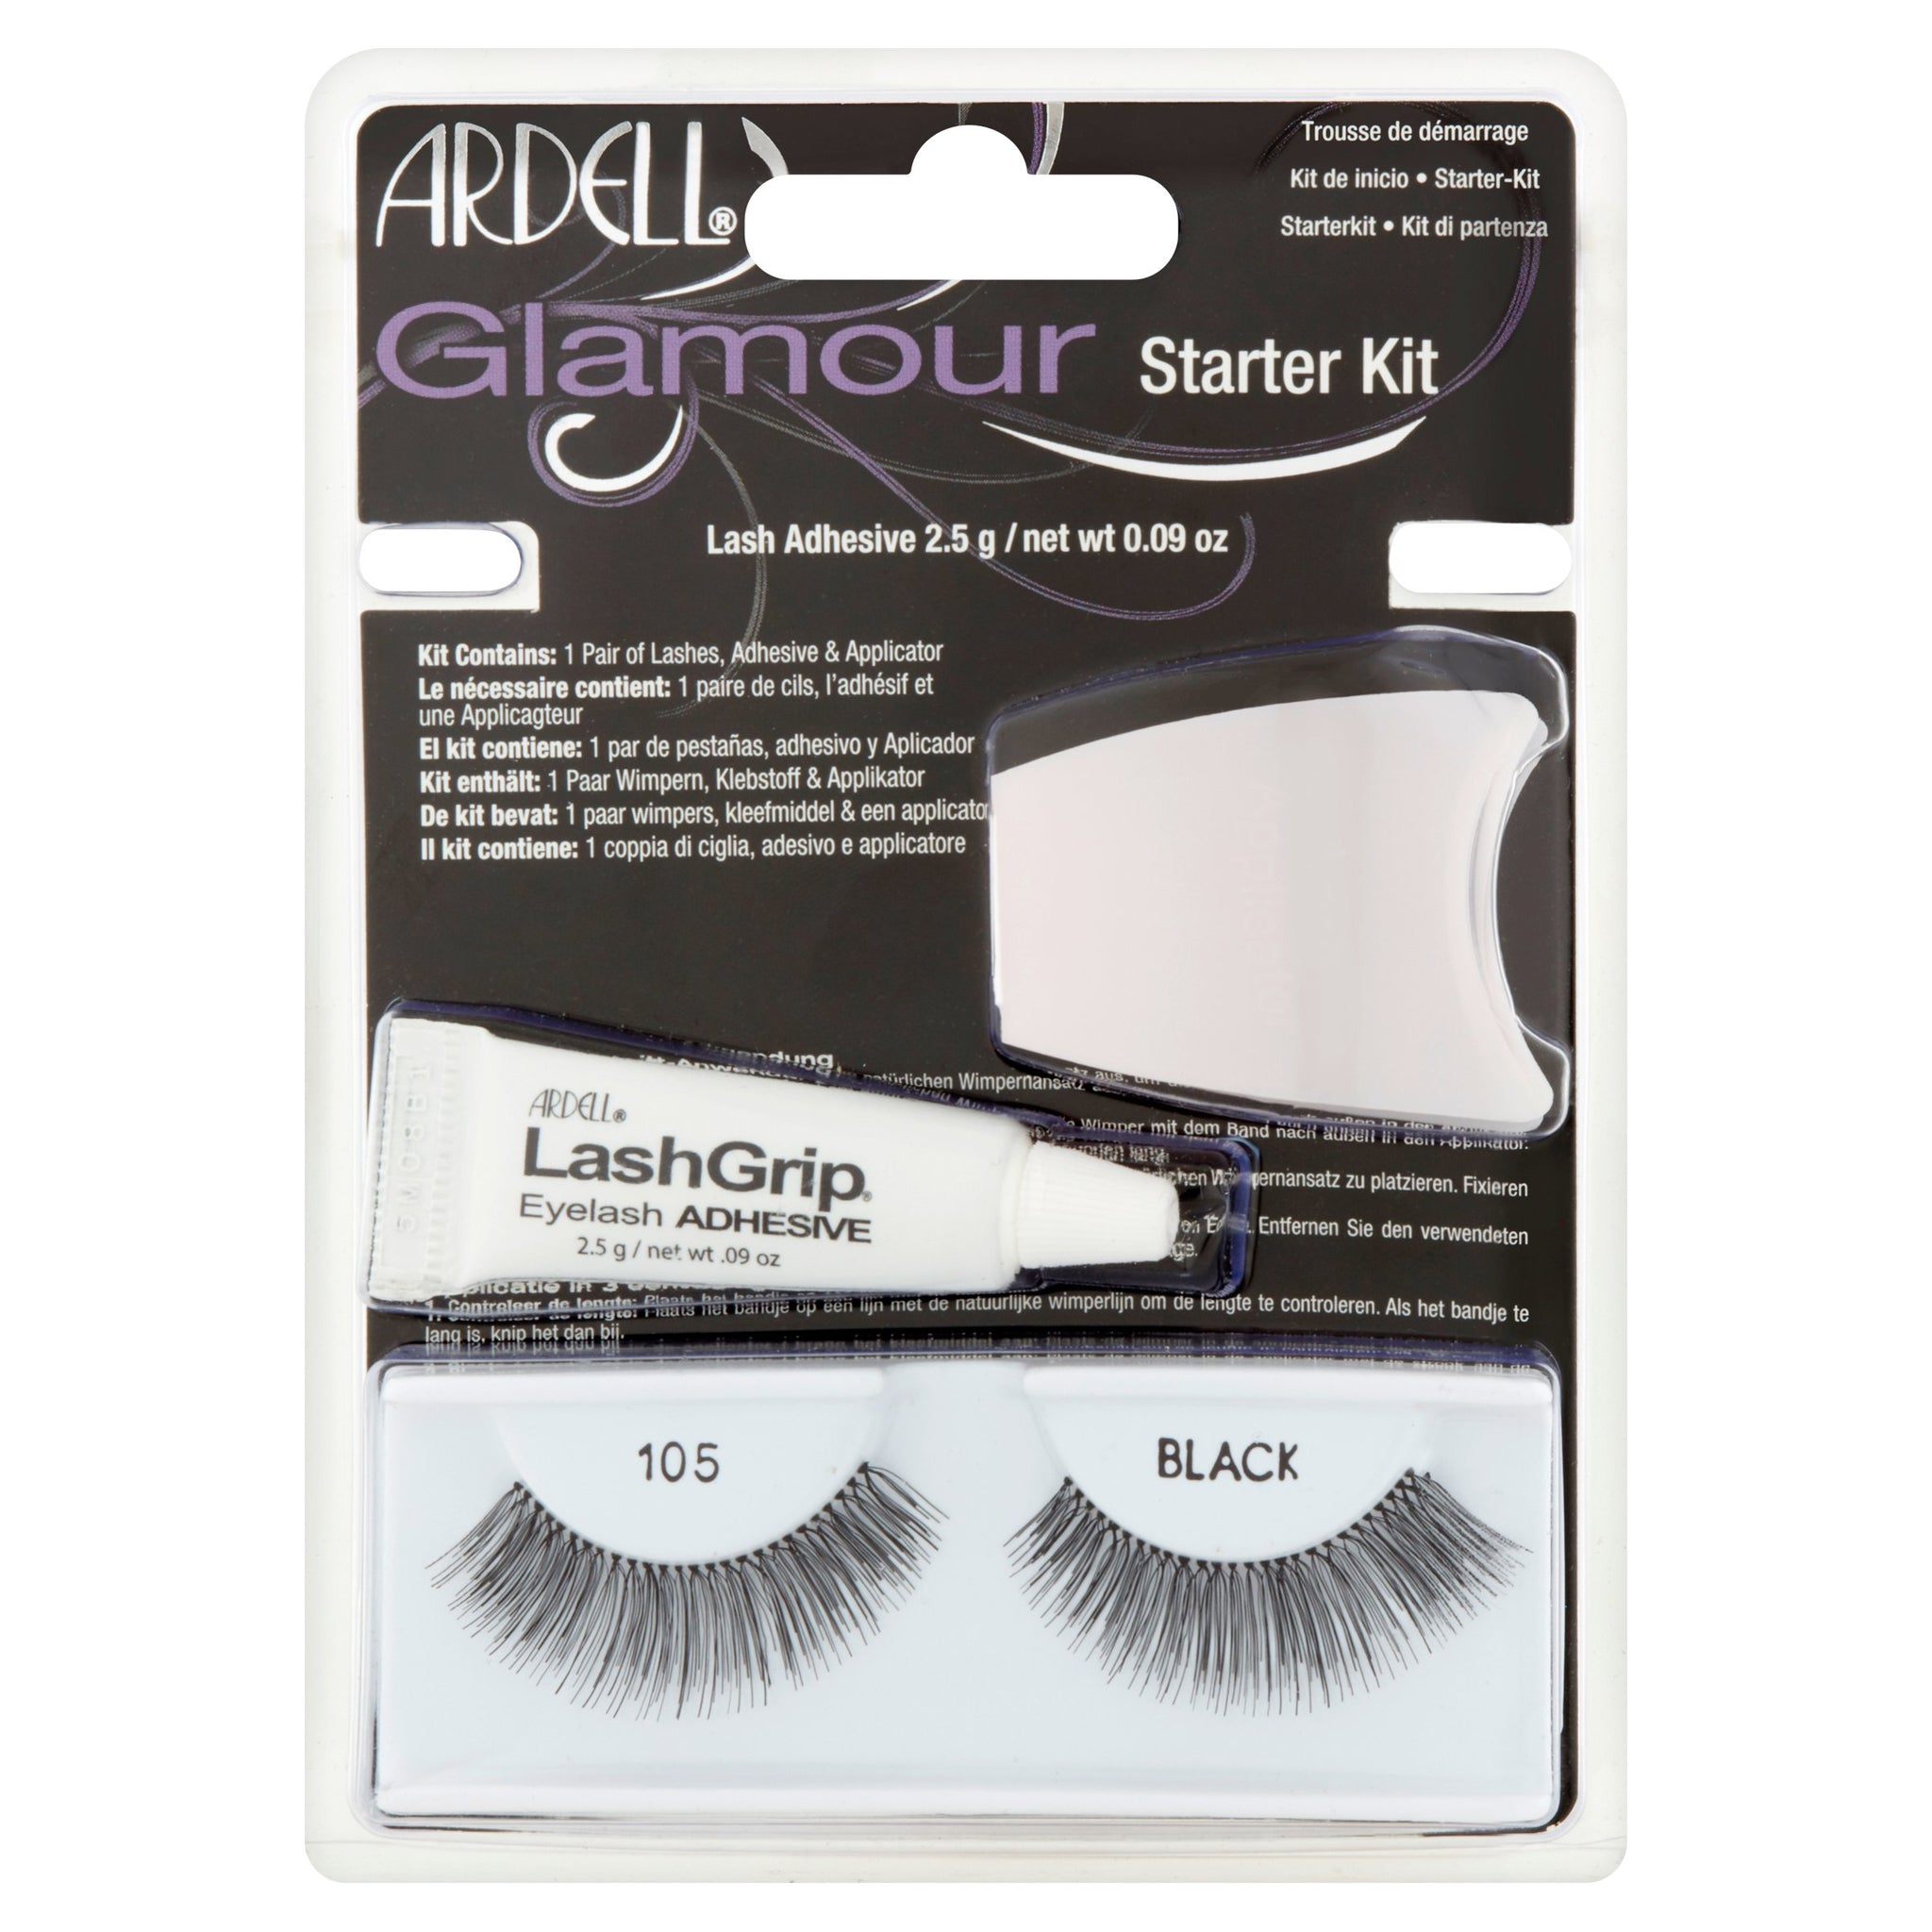 Ardell Glamour Starter Kit - Nails Plus Depot